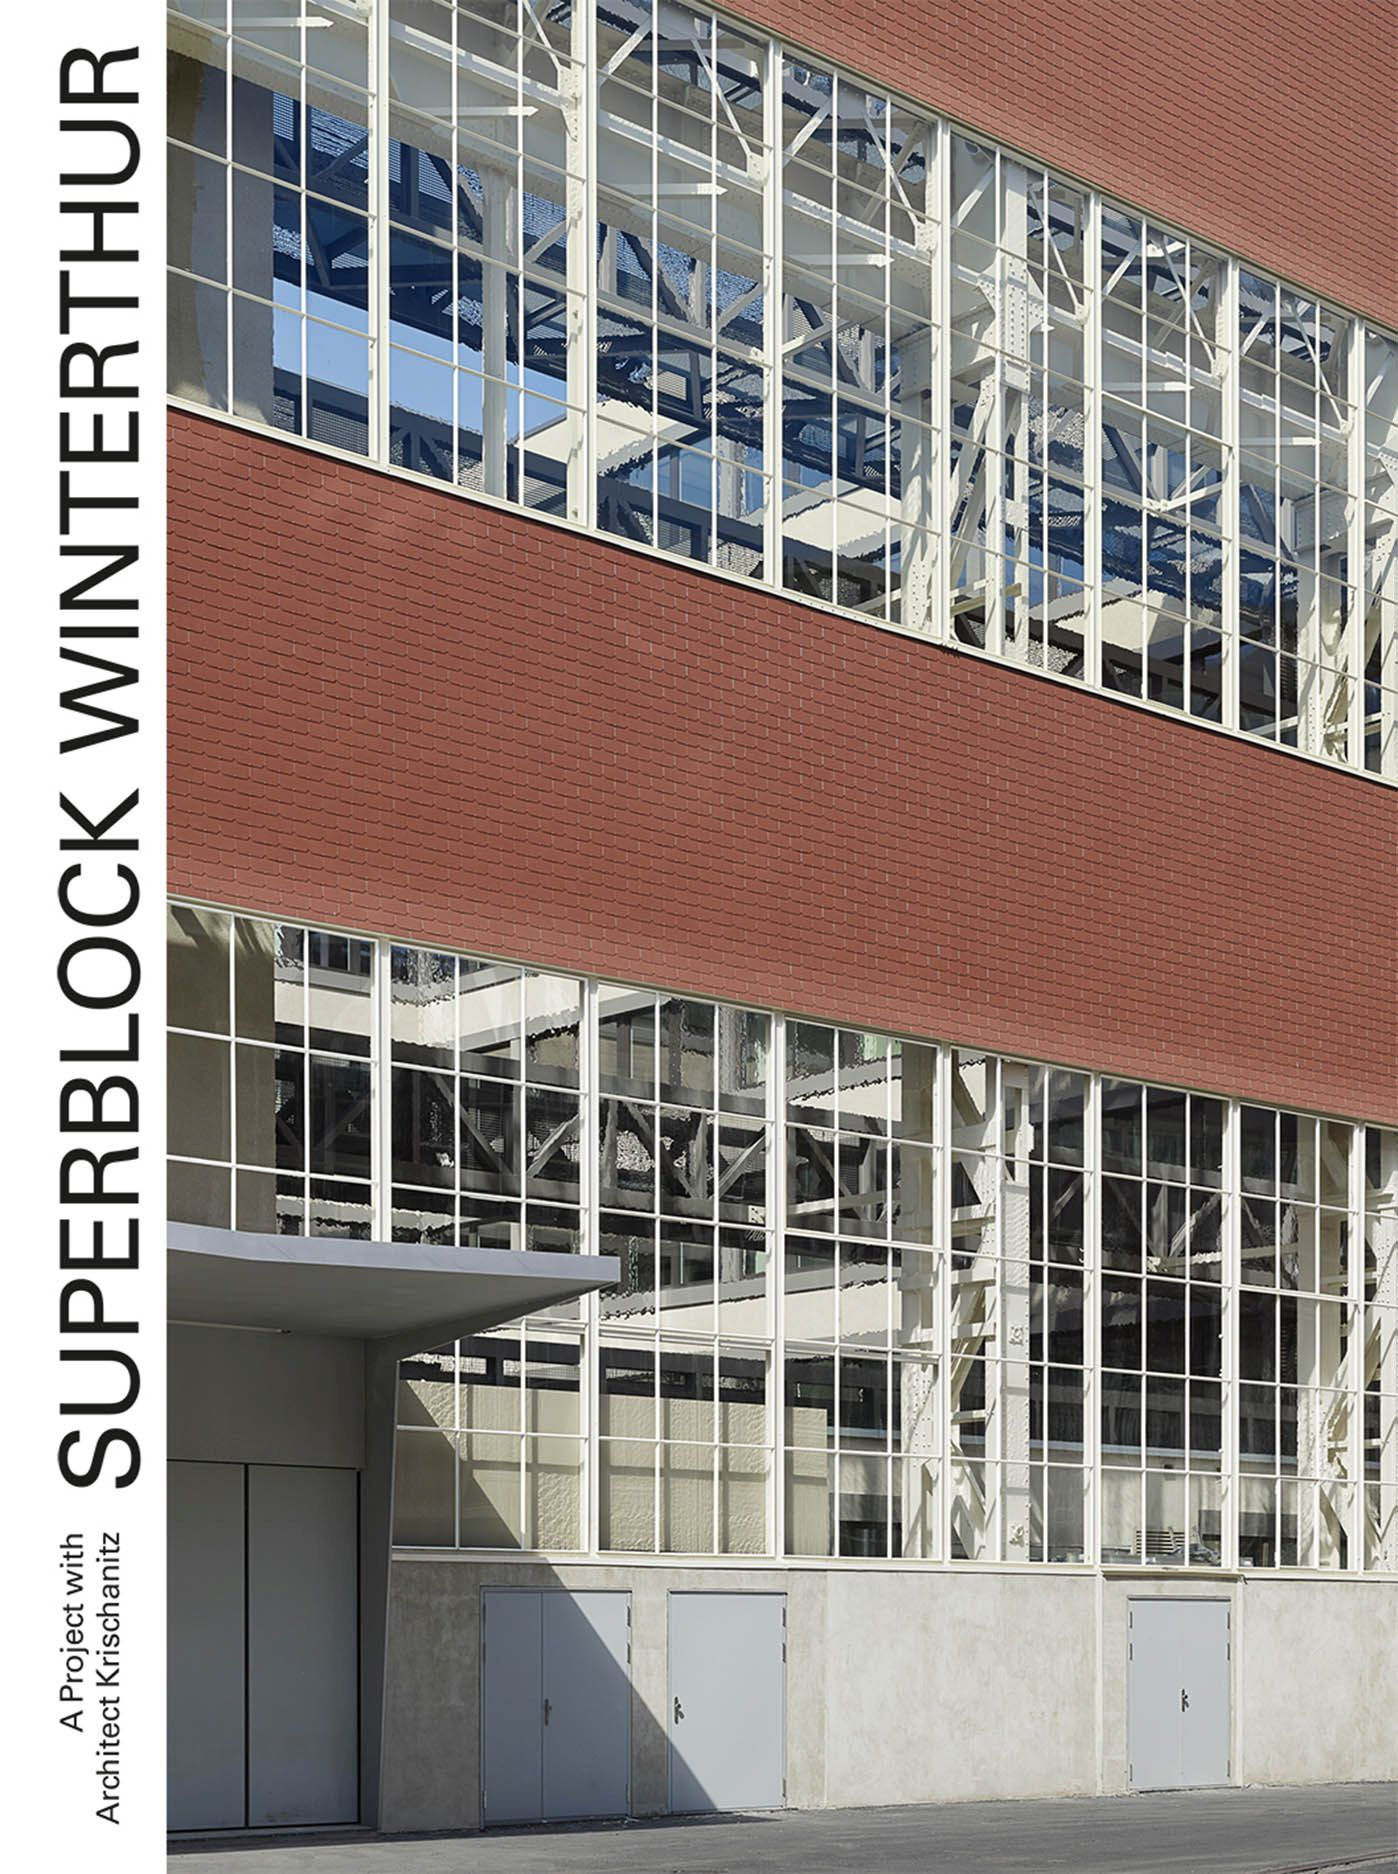 Superblock Winterthur: A Project with Architect Krischanitz